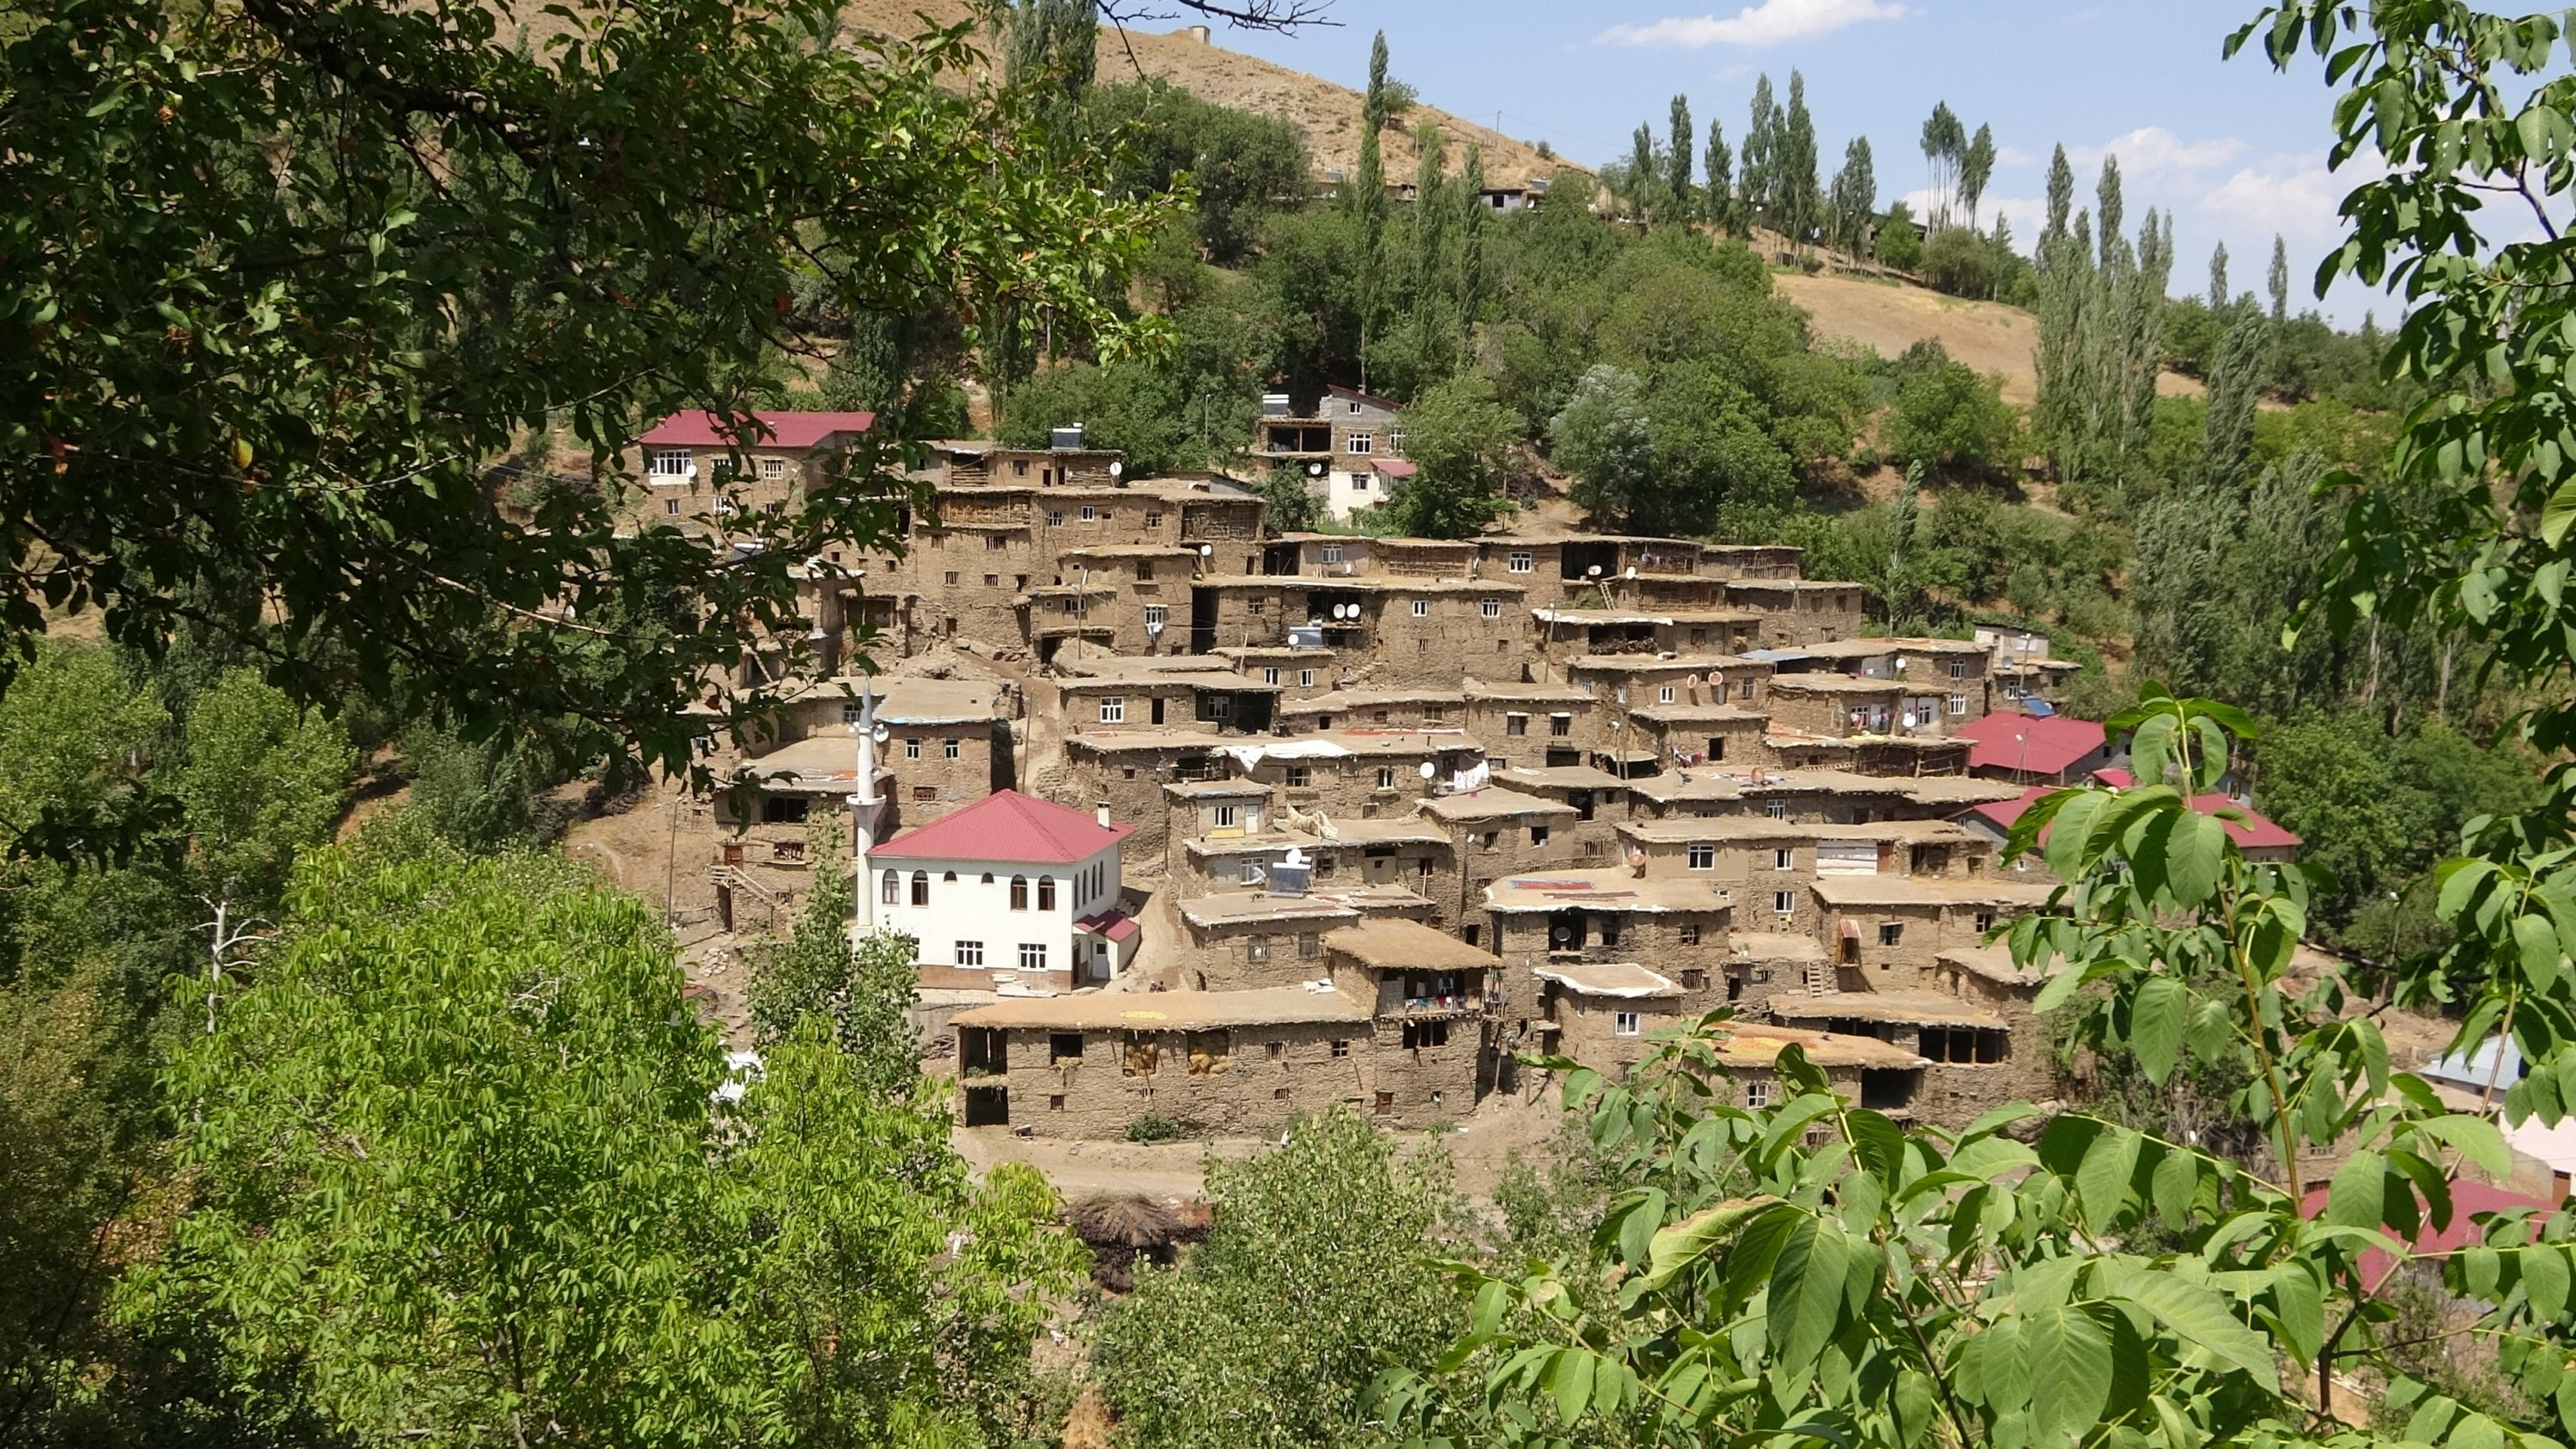 These historic 200- to 300-year-old stone houses are located in the Hizan district of eastern Turkey. (IHA Photo)